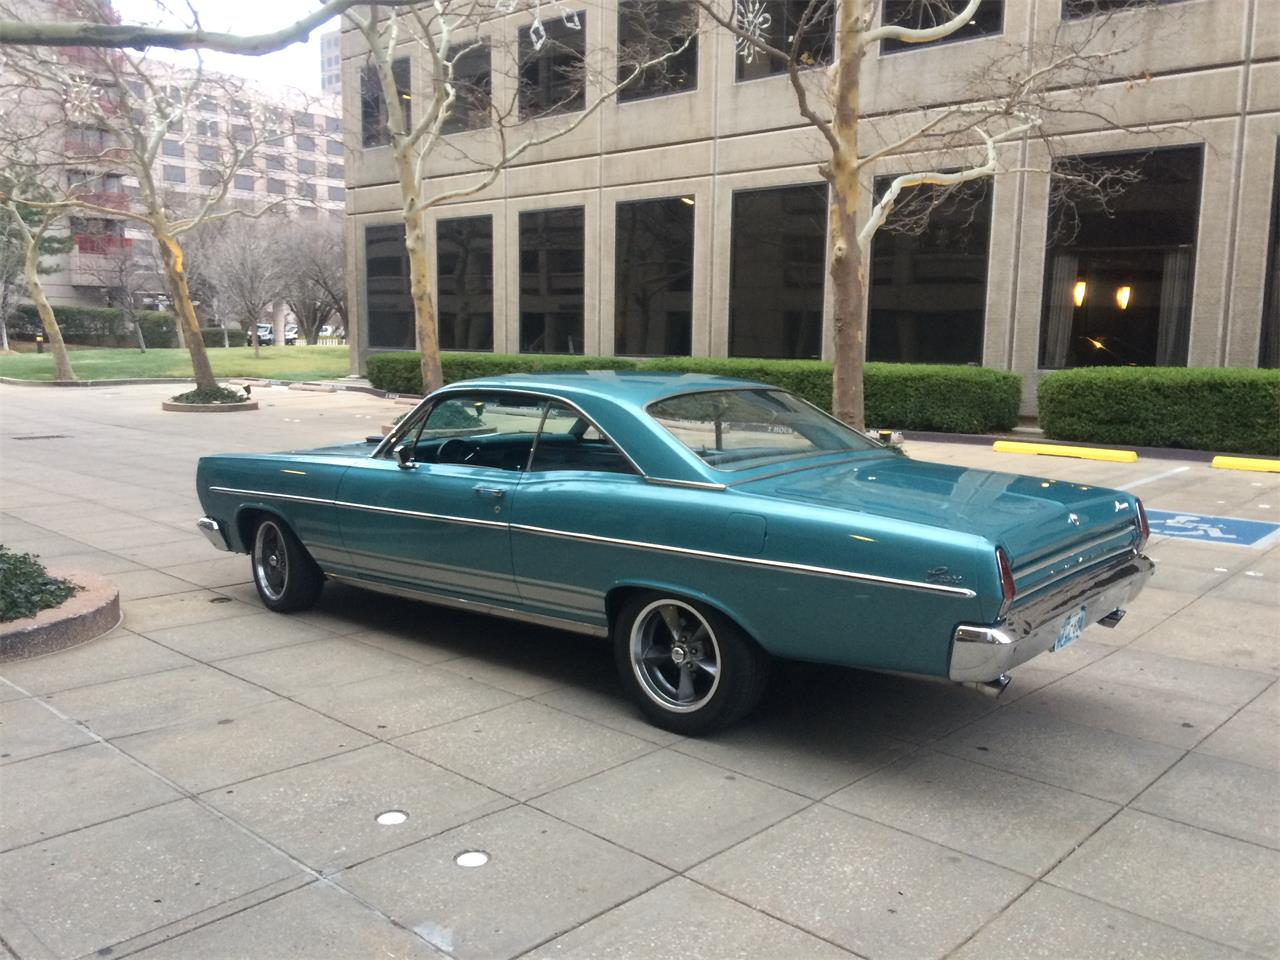 Large Picture of '67 Mercury Comet Offered by a Private Seller - PZKB